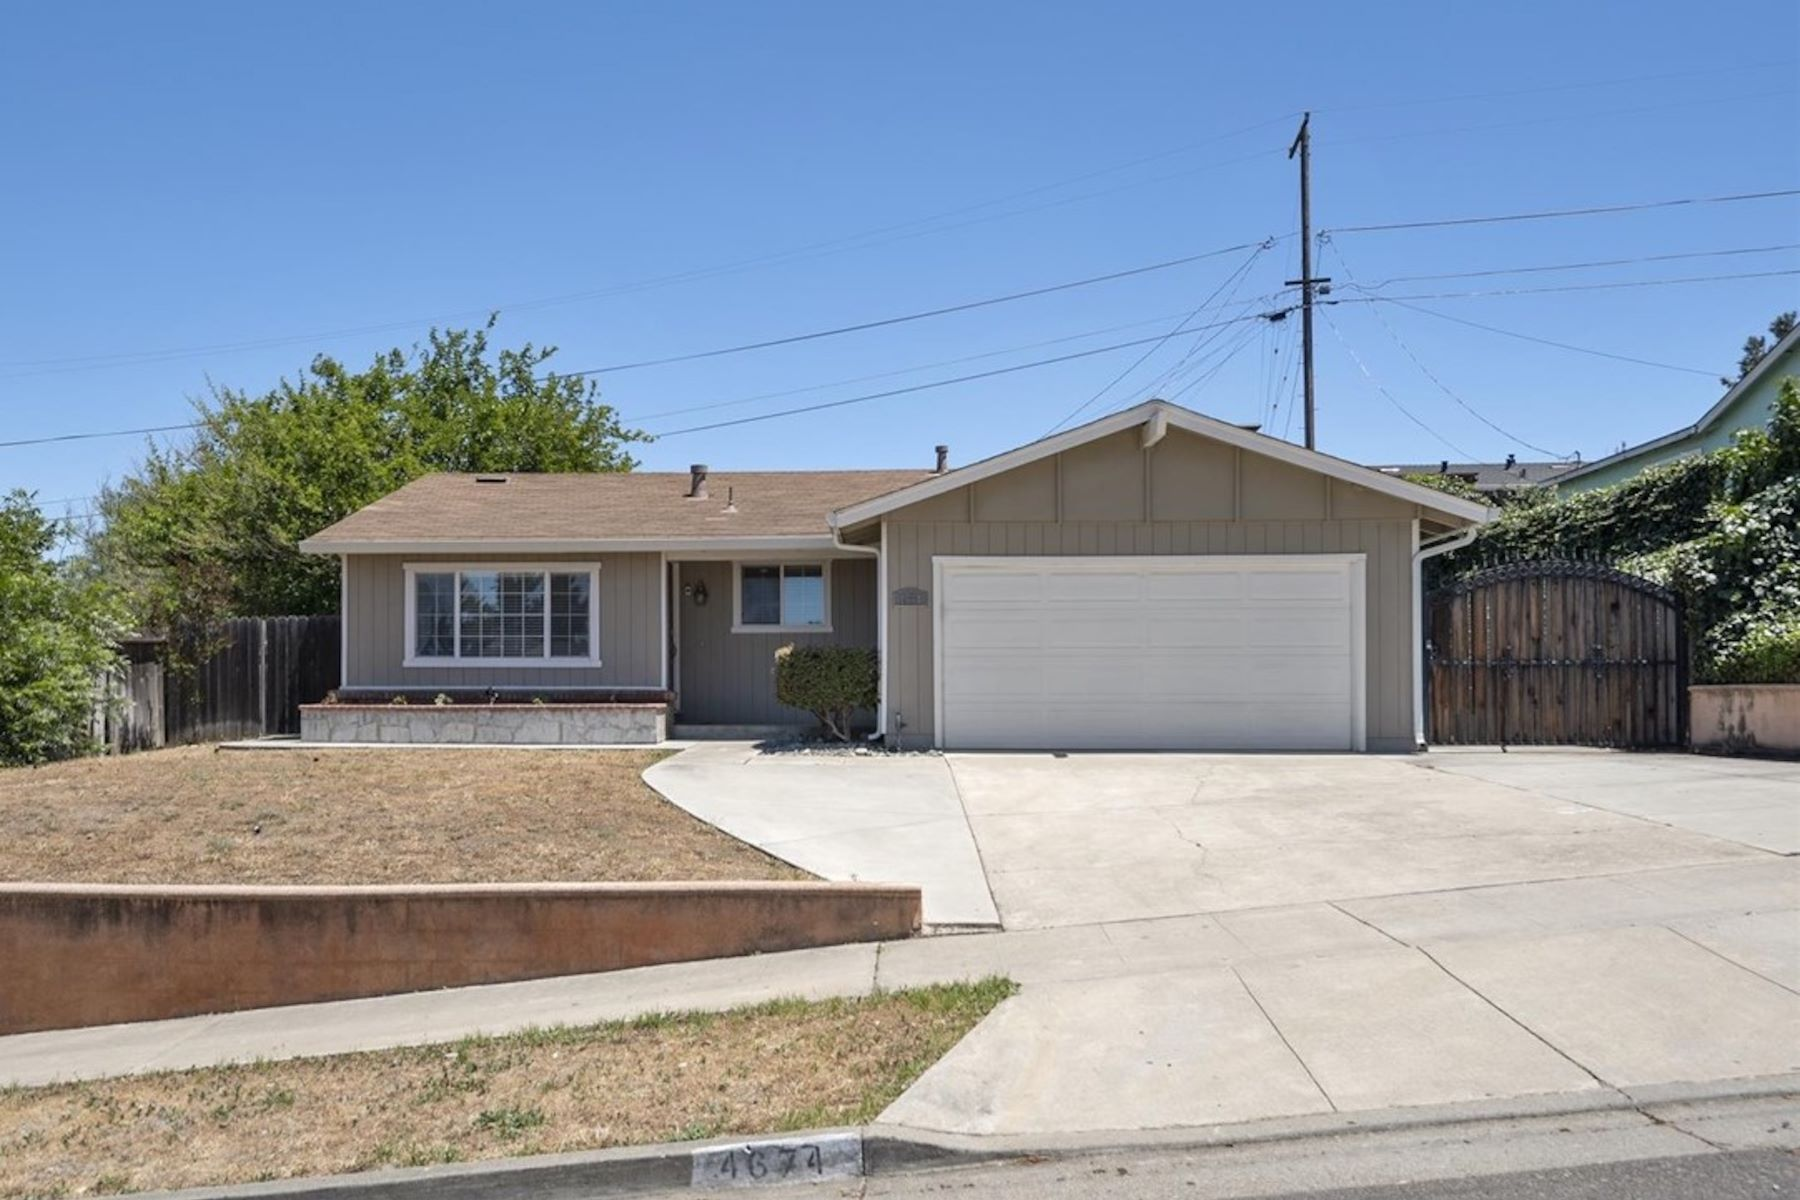 Single Family Homes for Sale at Single level, move in ready, great neighborhood! 4674 Ventura Avenue San Jose, California 95111 United States